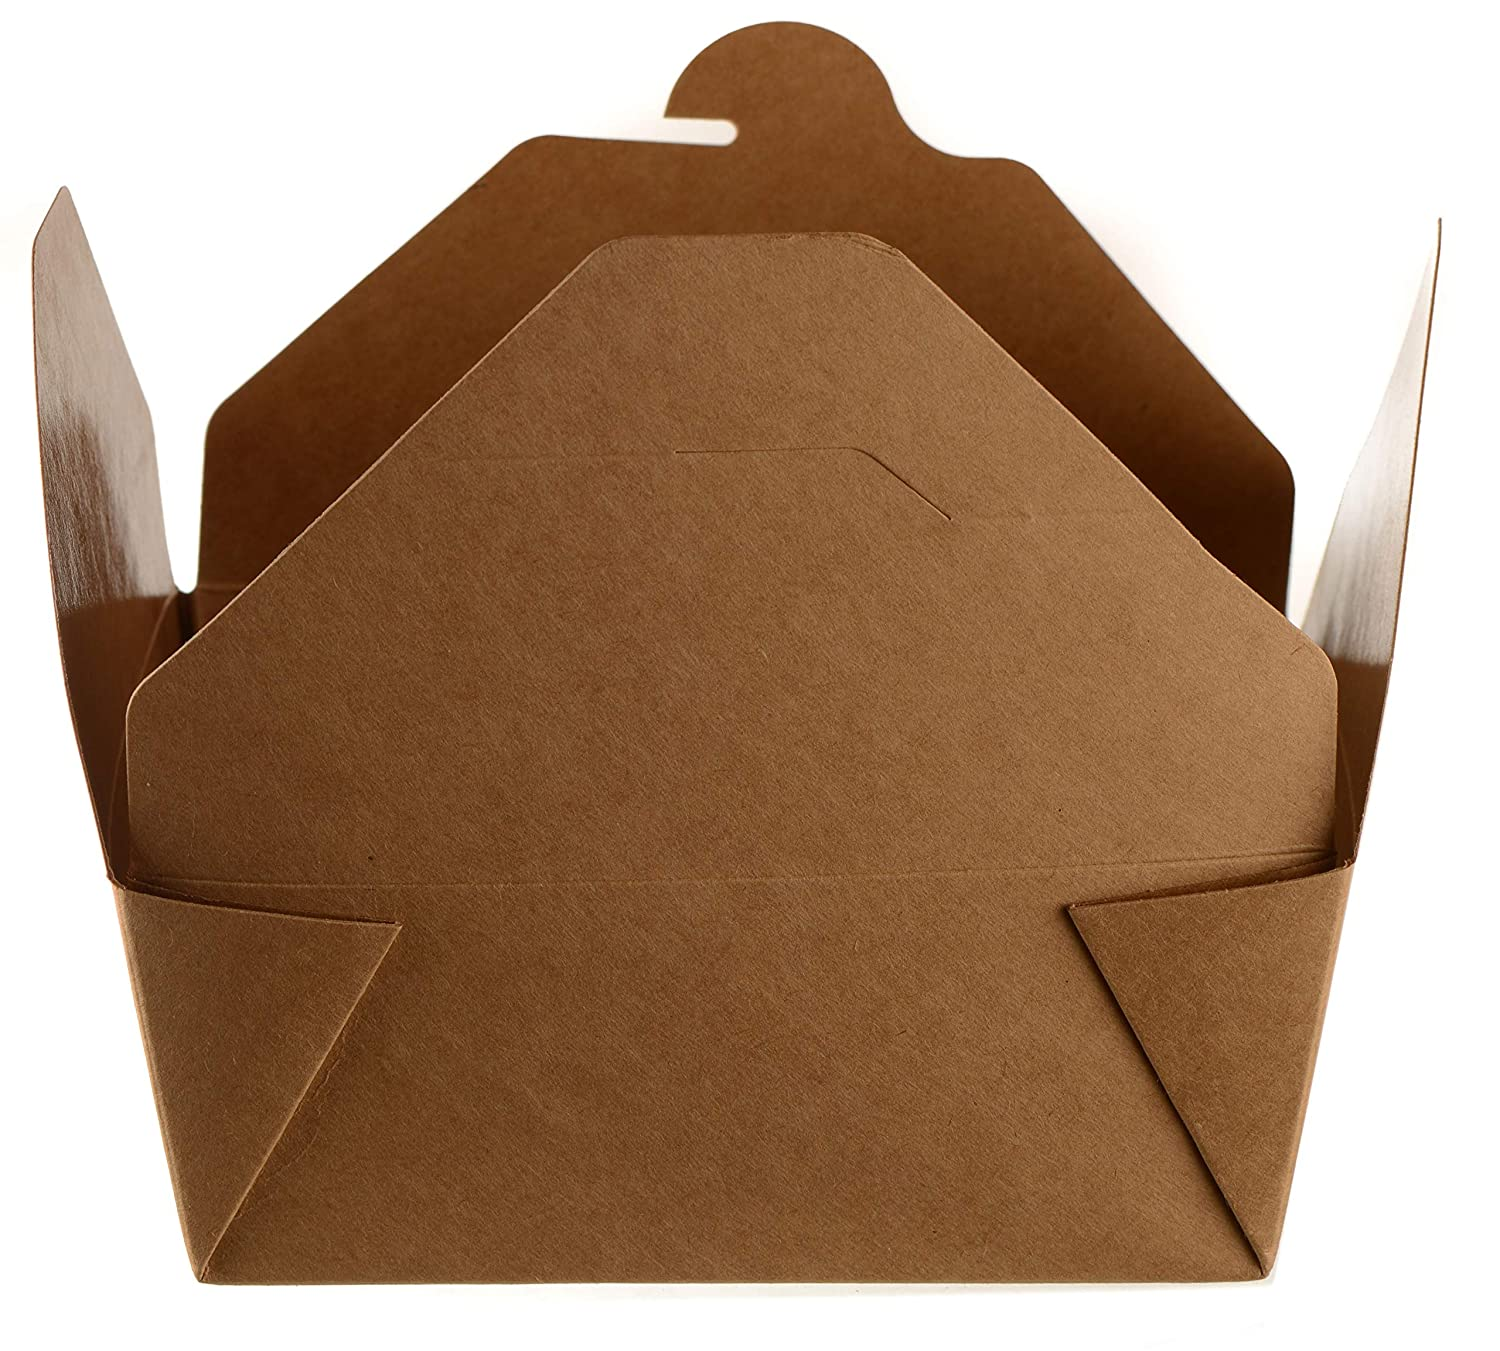 [25 PACK] Take Out Food Containers 45 oz Kraft Brown Paper Take Out Boxes Microwaveable Leak and Grease Resistant Food Containers - To Go Containers for Restaurant, Catering, Food Truck - Recyclable Lunch Box #8 by EcoQuality